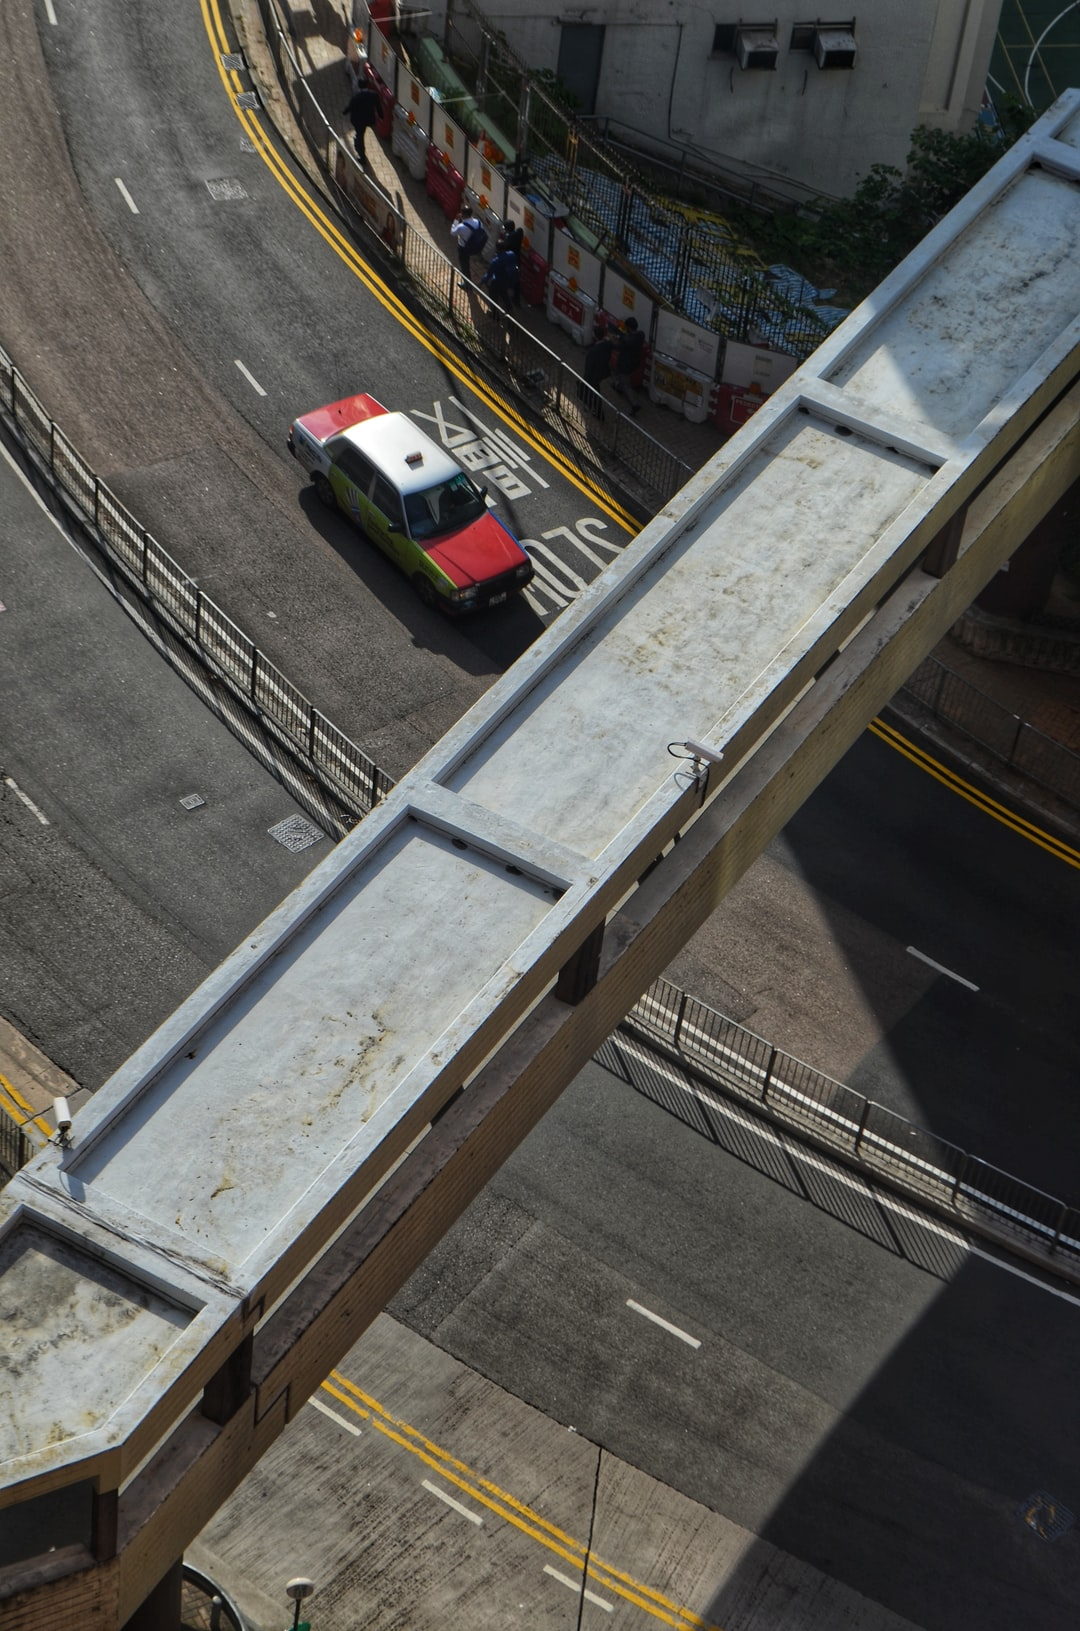 A taxi on a road in Mid-Levels, as seen from the University of Hong Kong